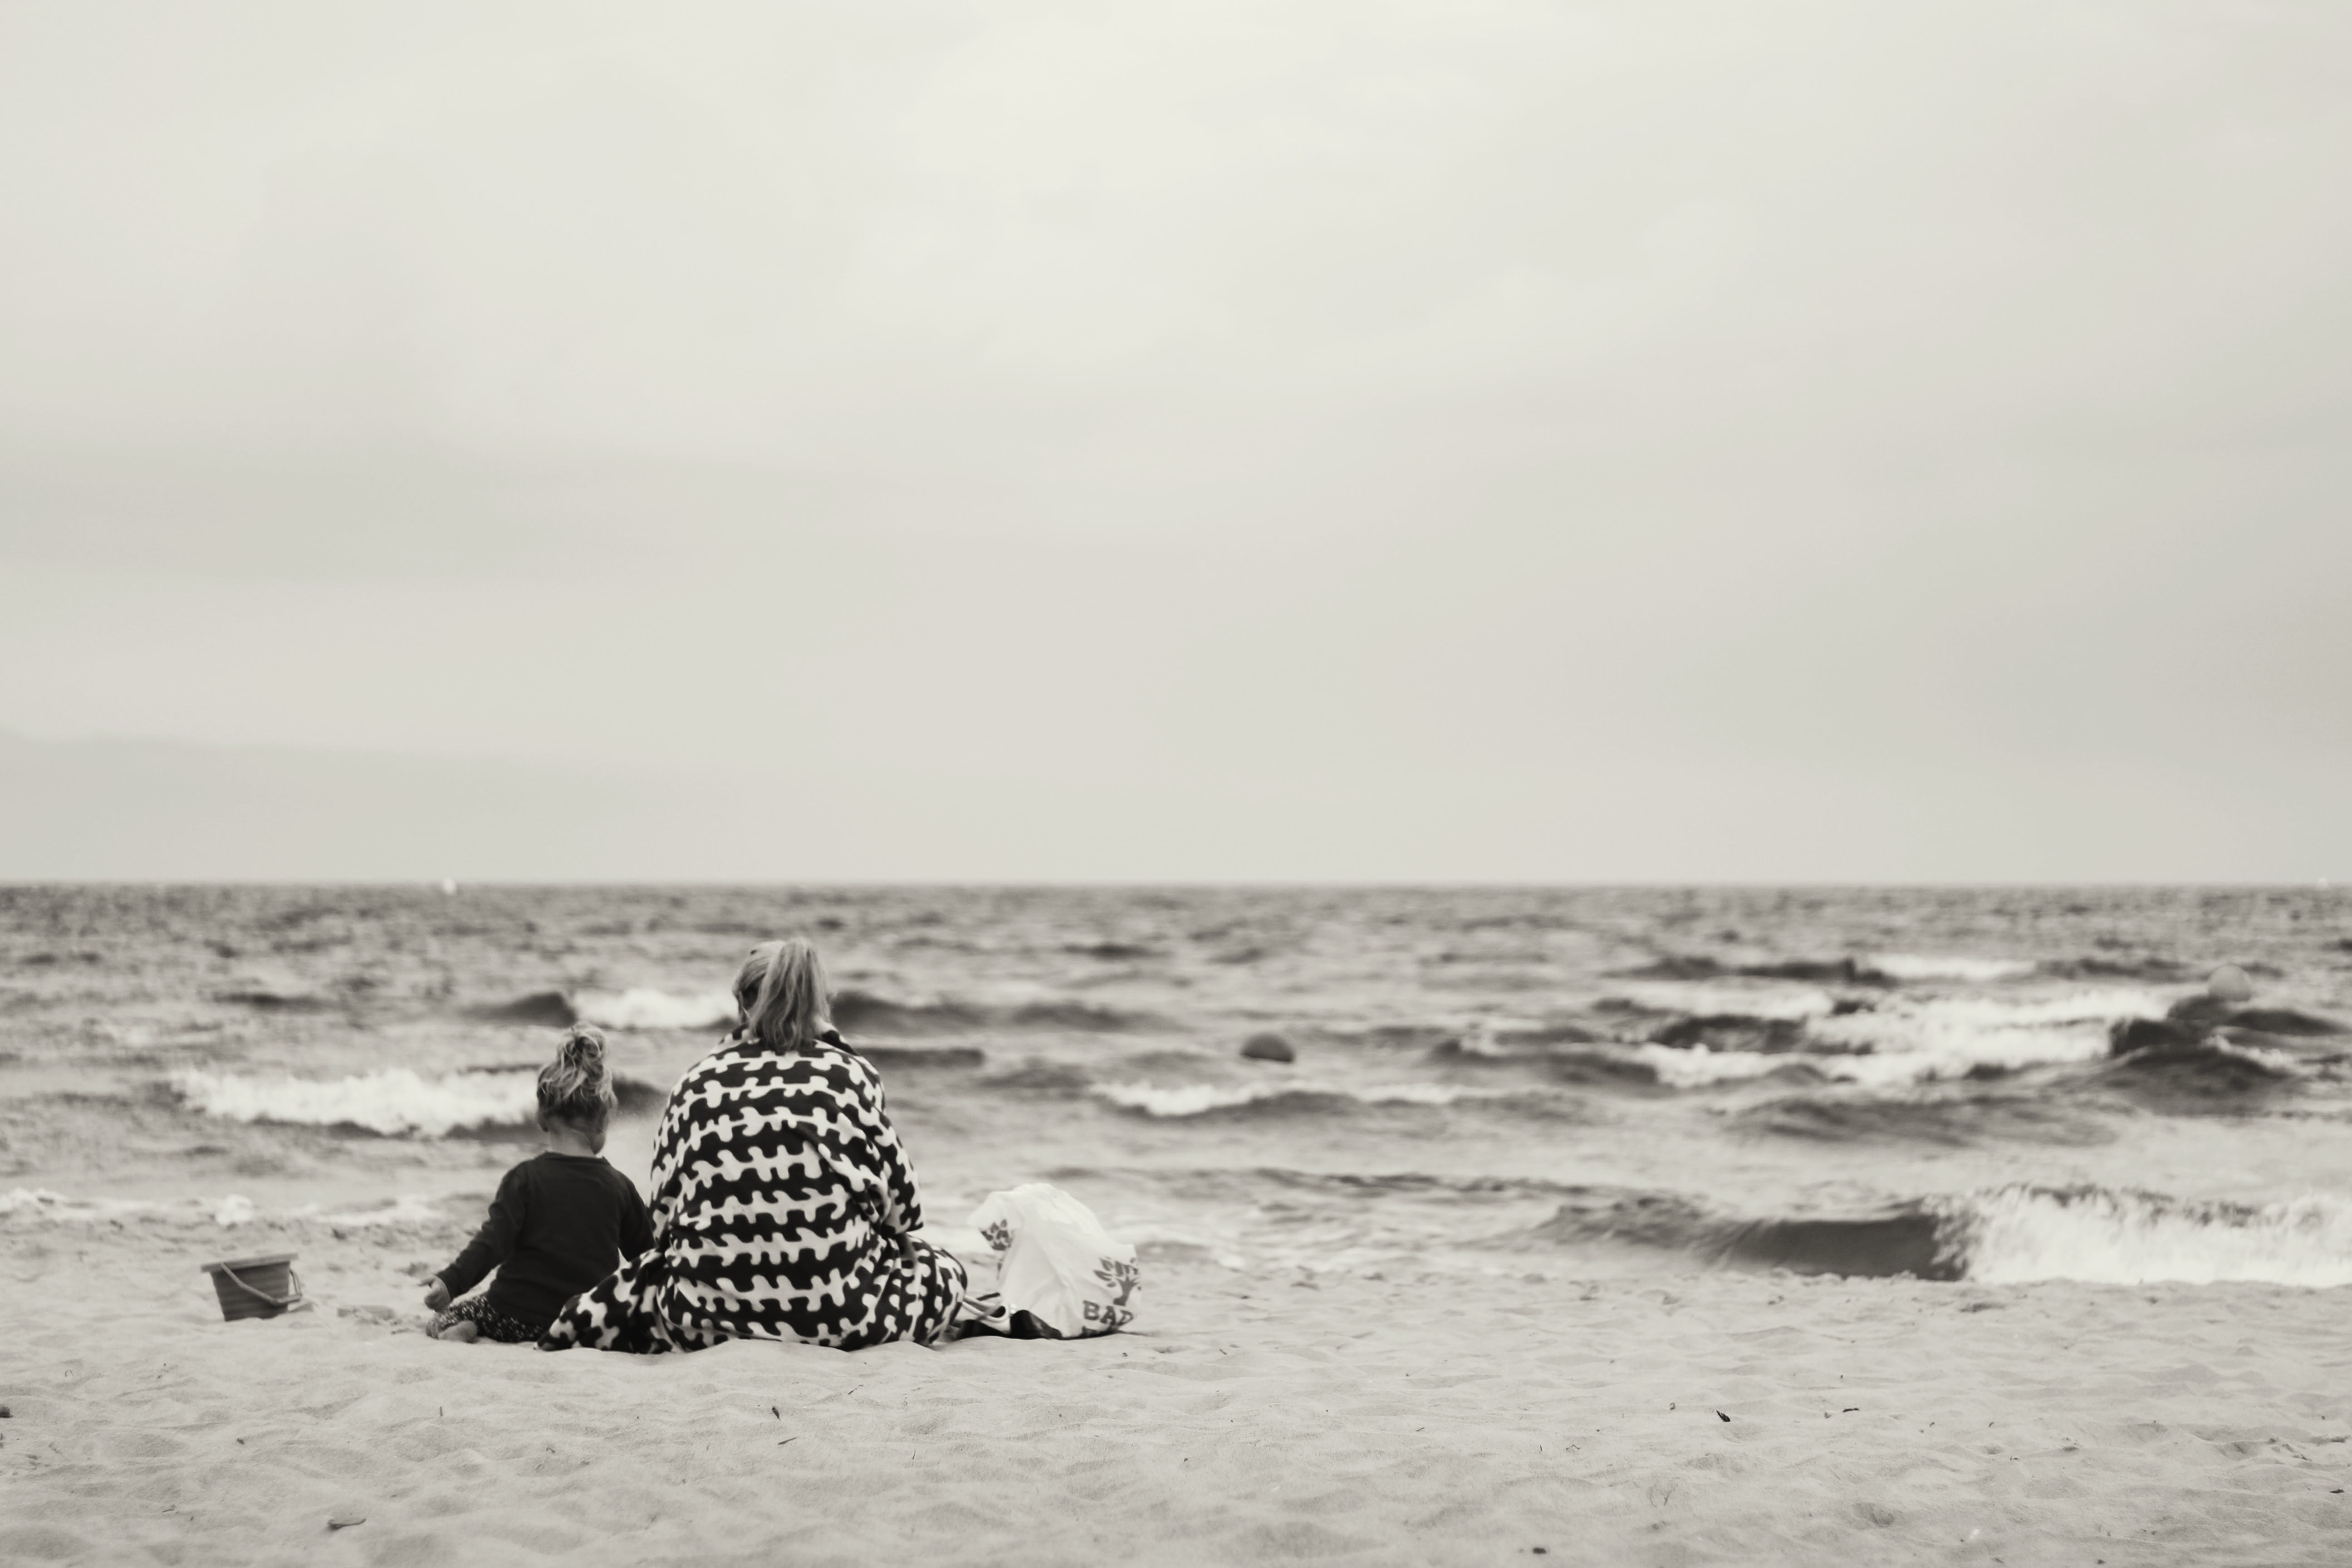 Woman And Child Sitting On Sand Near Body Of Water